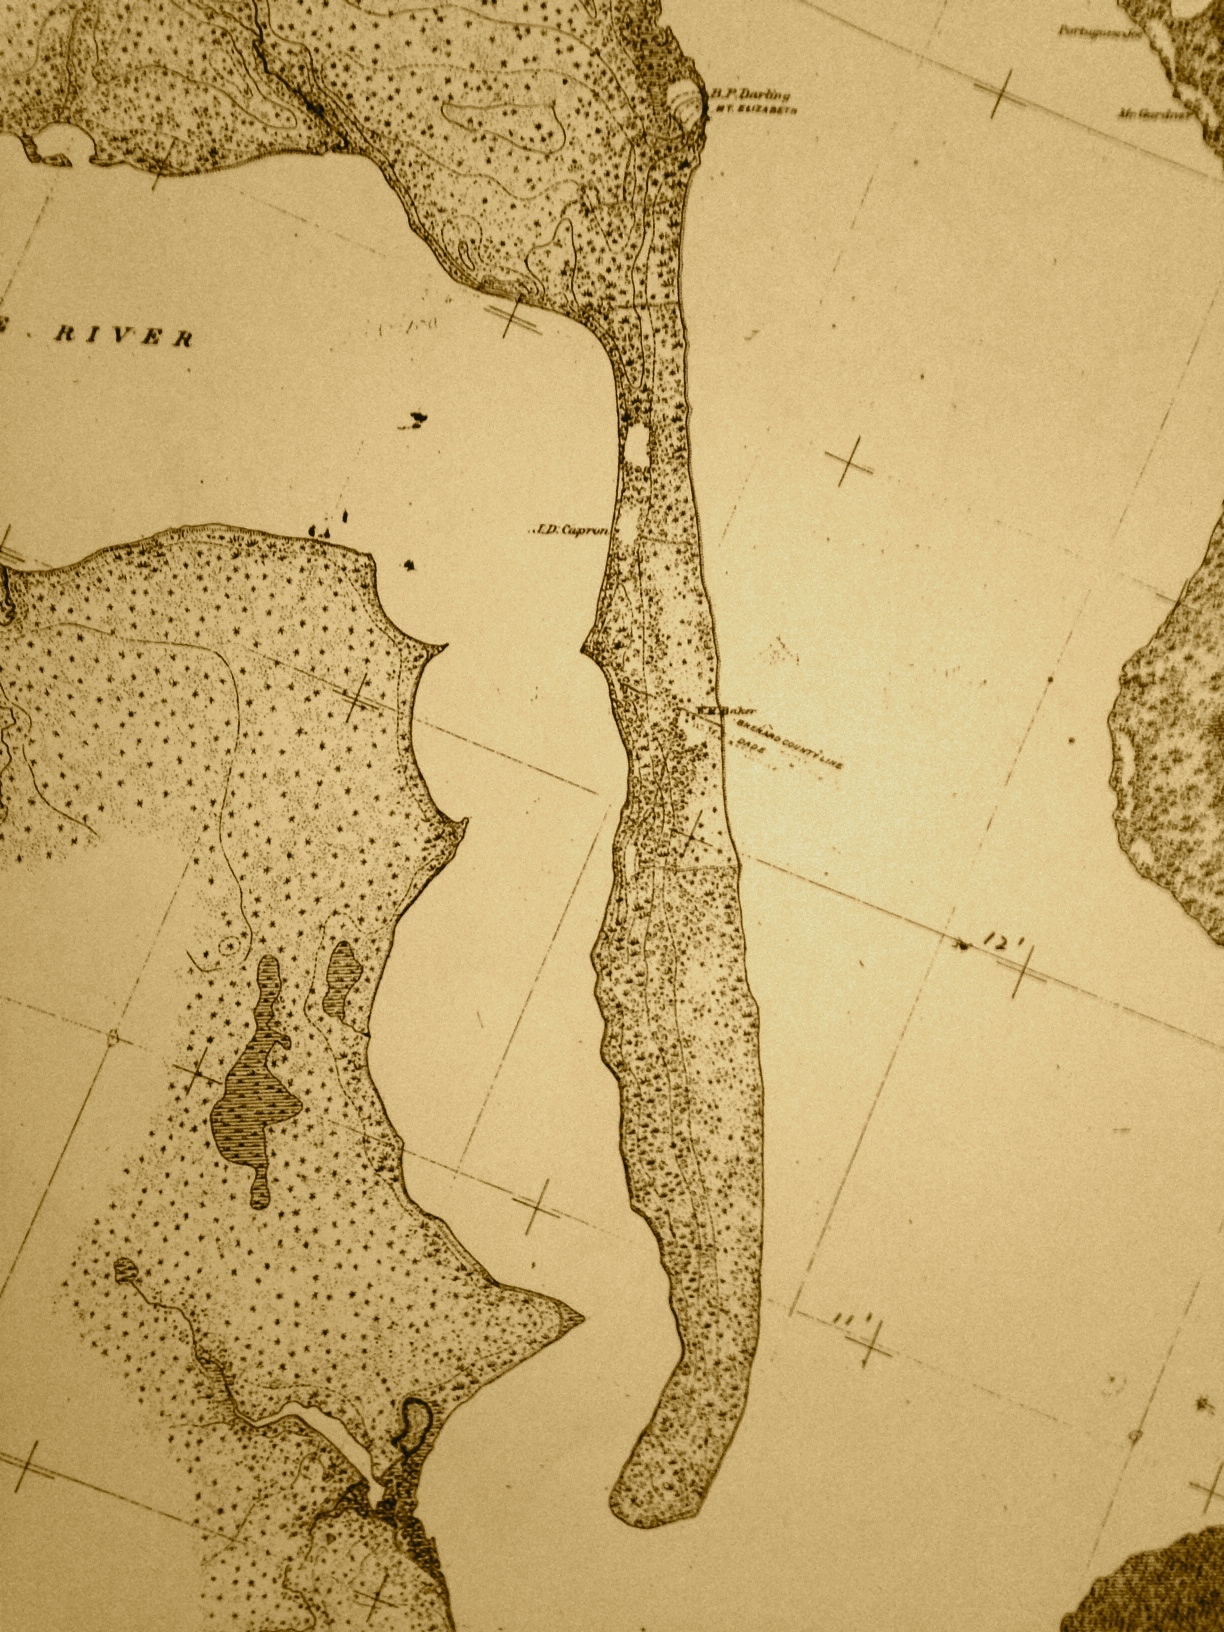 The Rare Topographical SurveyDescription St Lucie River - Indian river lagoon map